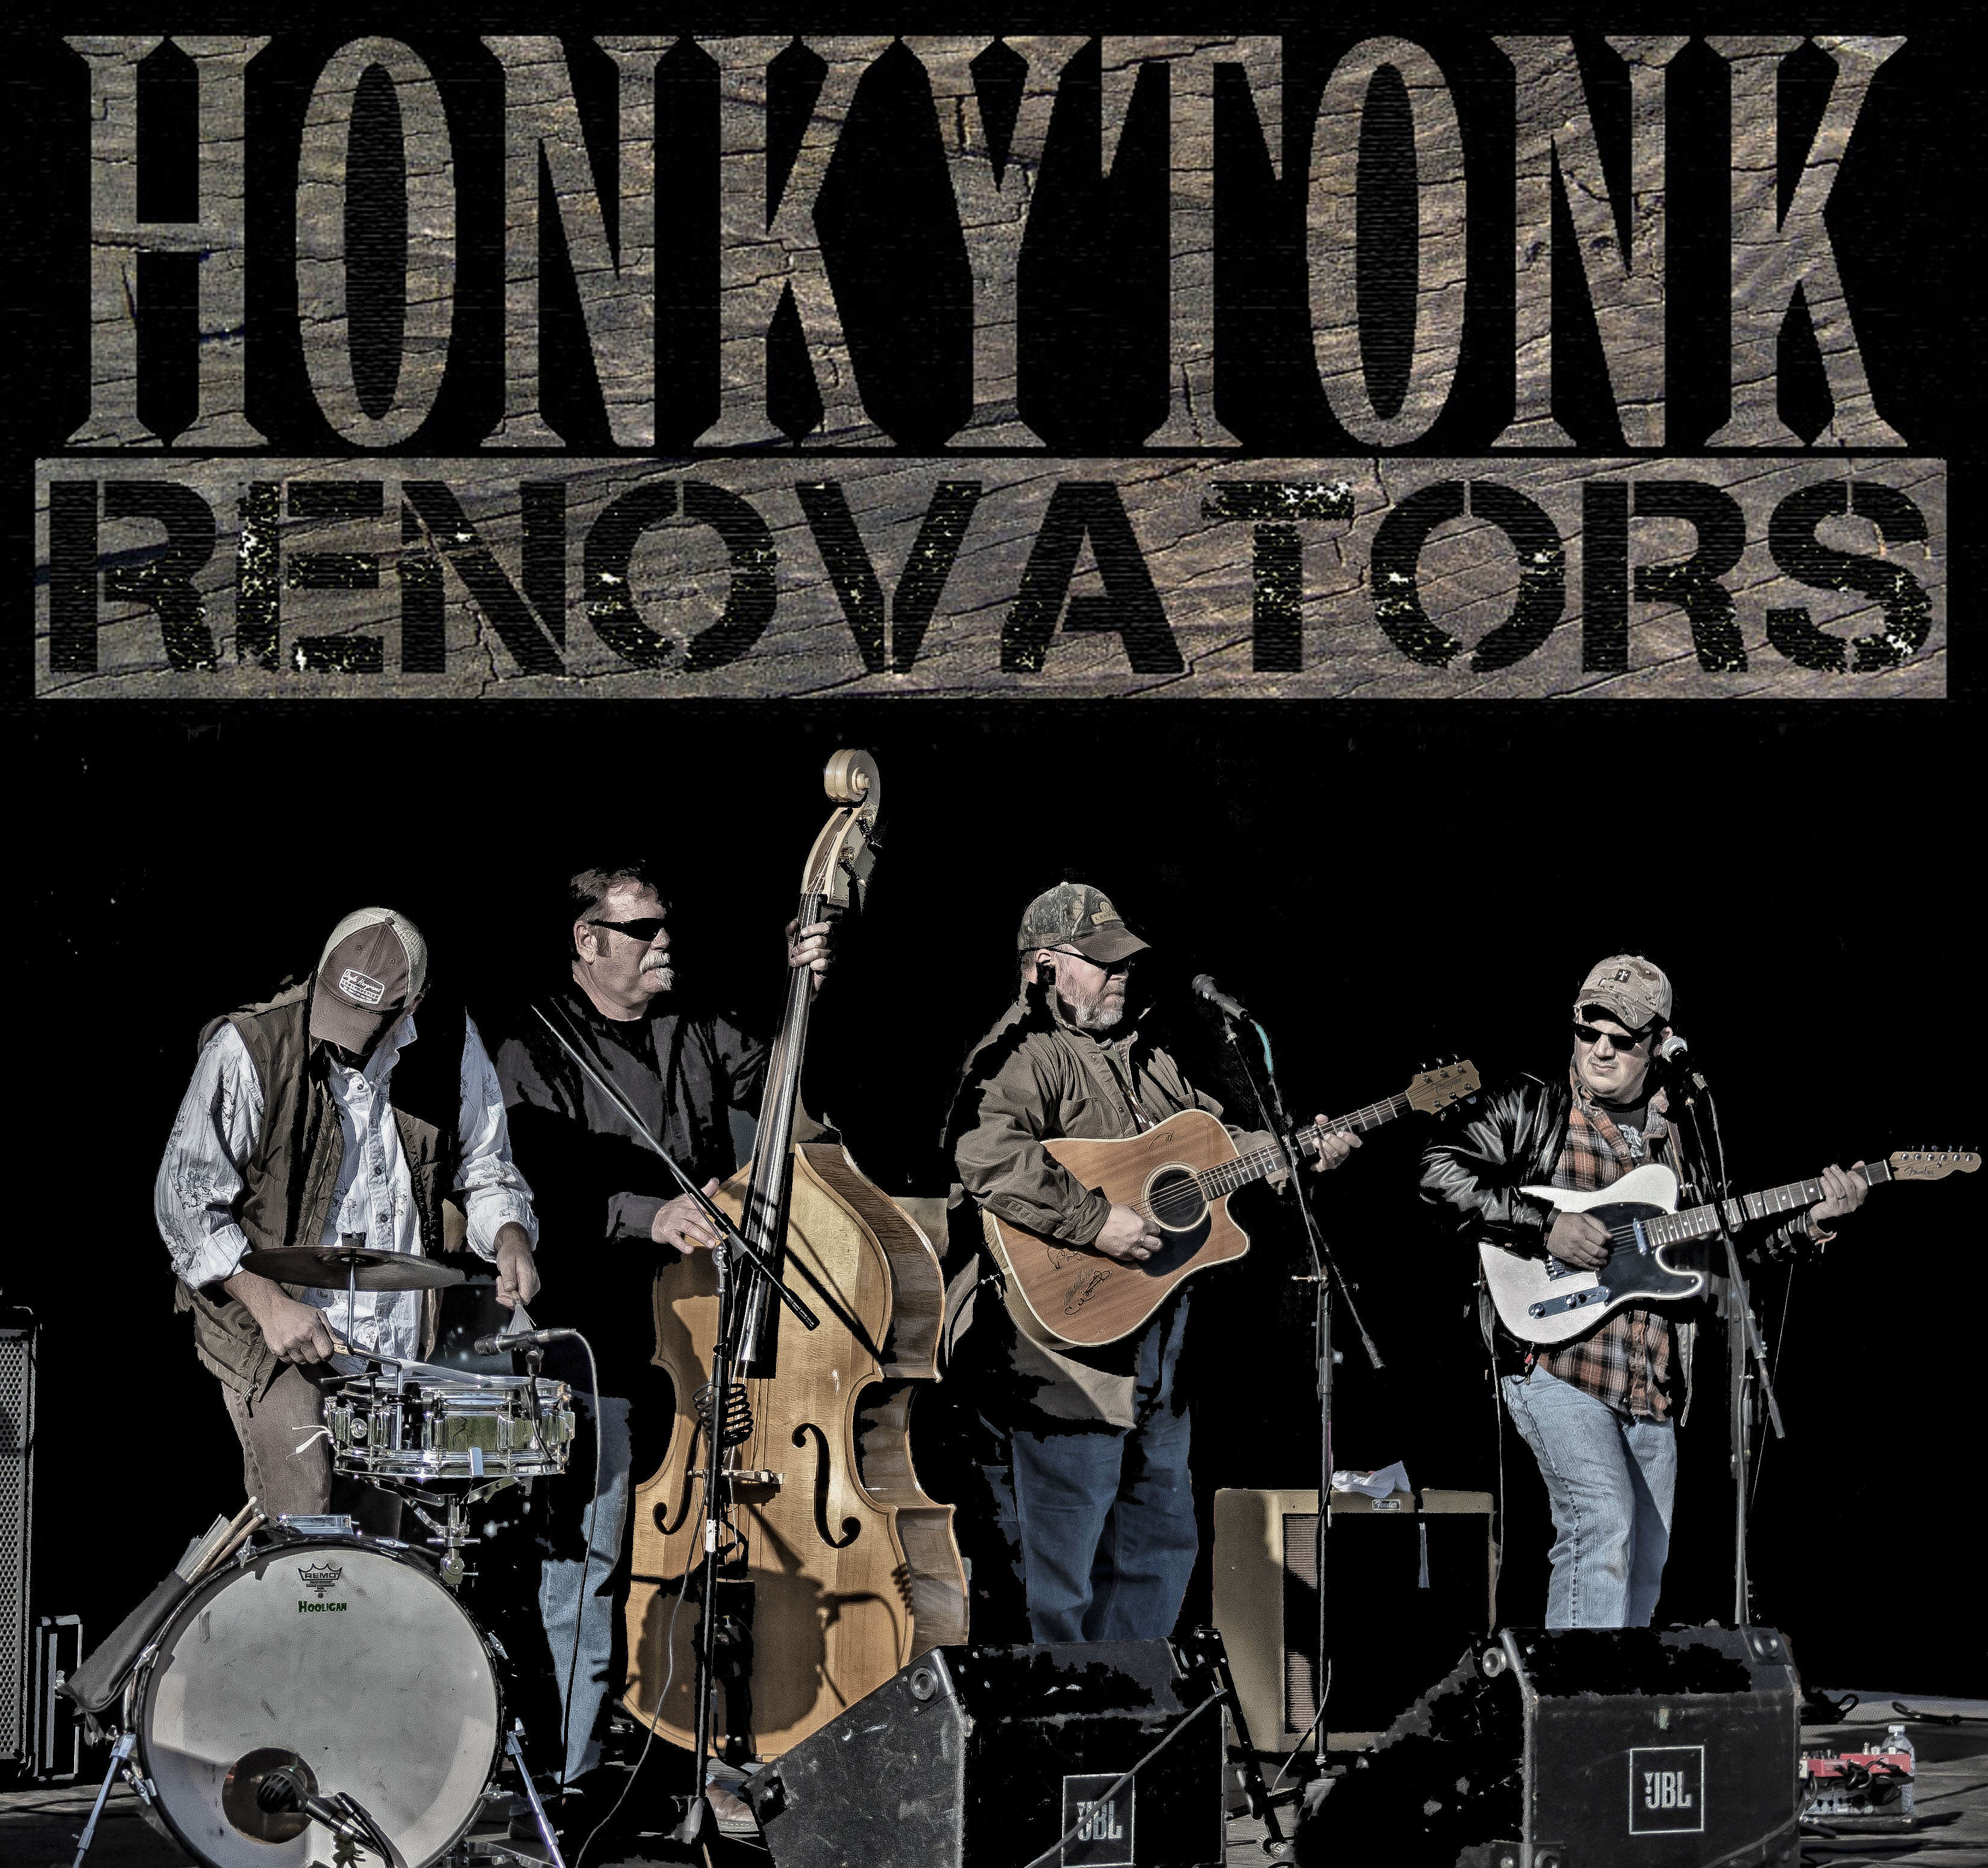 Splinter Middleton and the Honkytonk Renovators will be among the entertainers at the Douglas County Fair next Friday night.